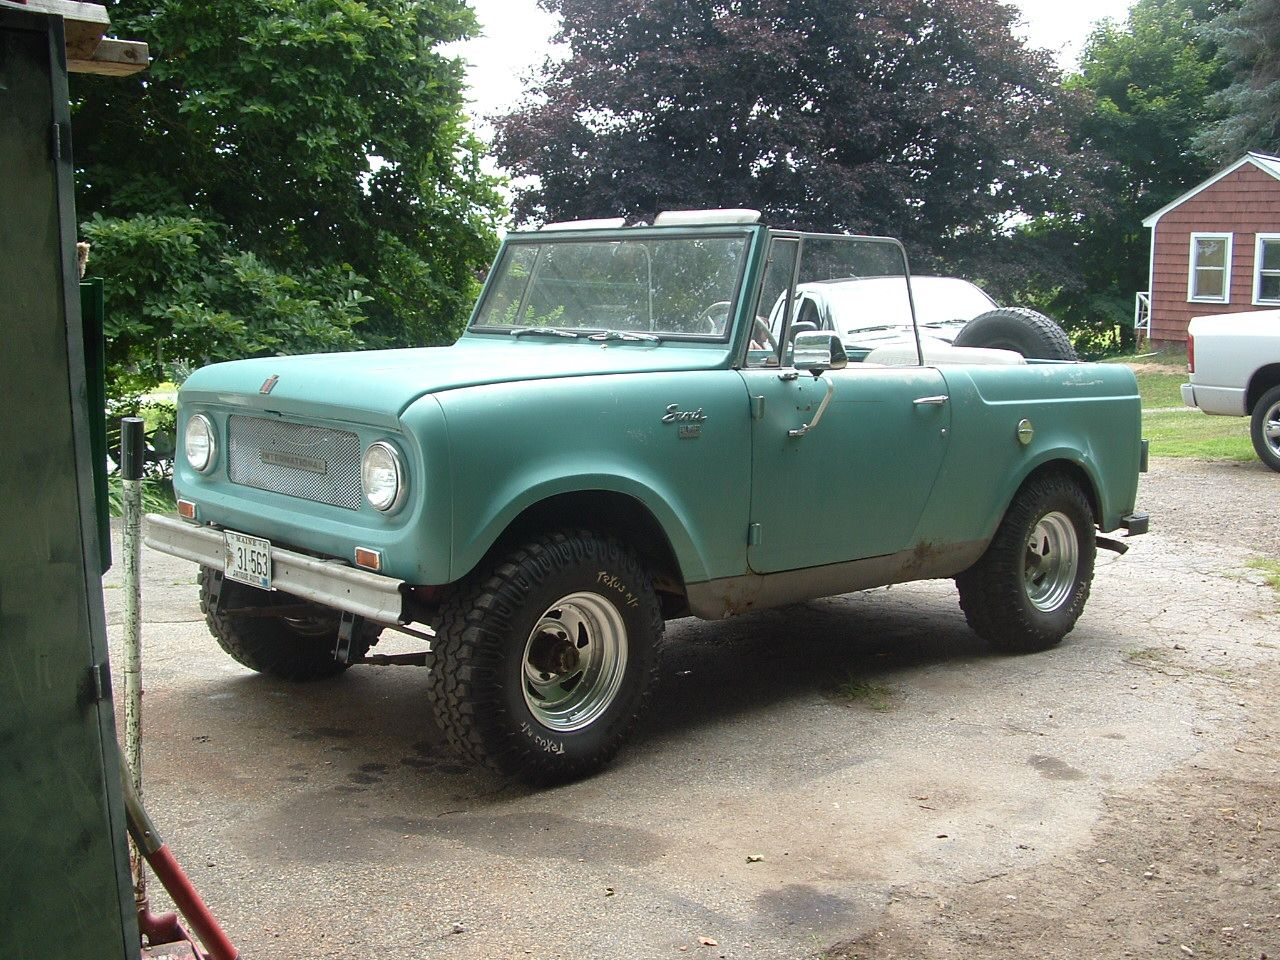 1970 international harvester scout harvester international sr2 - An International Harvester Scout Would Be My Play